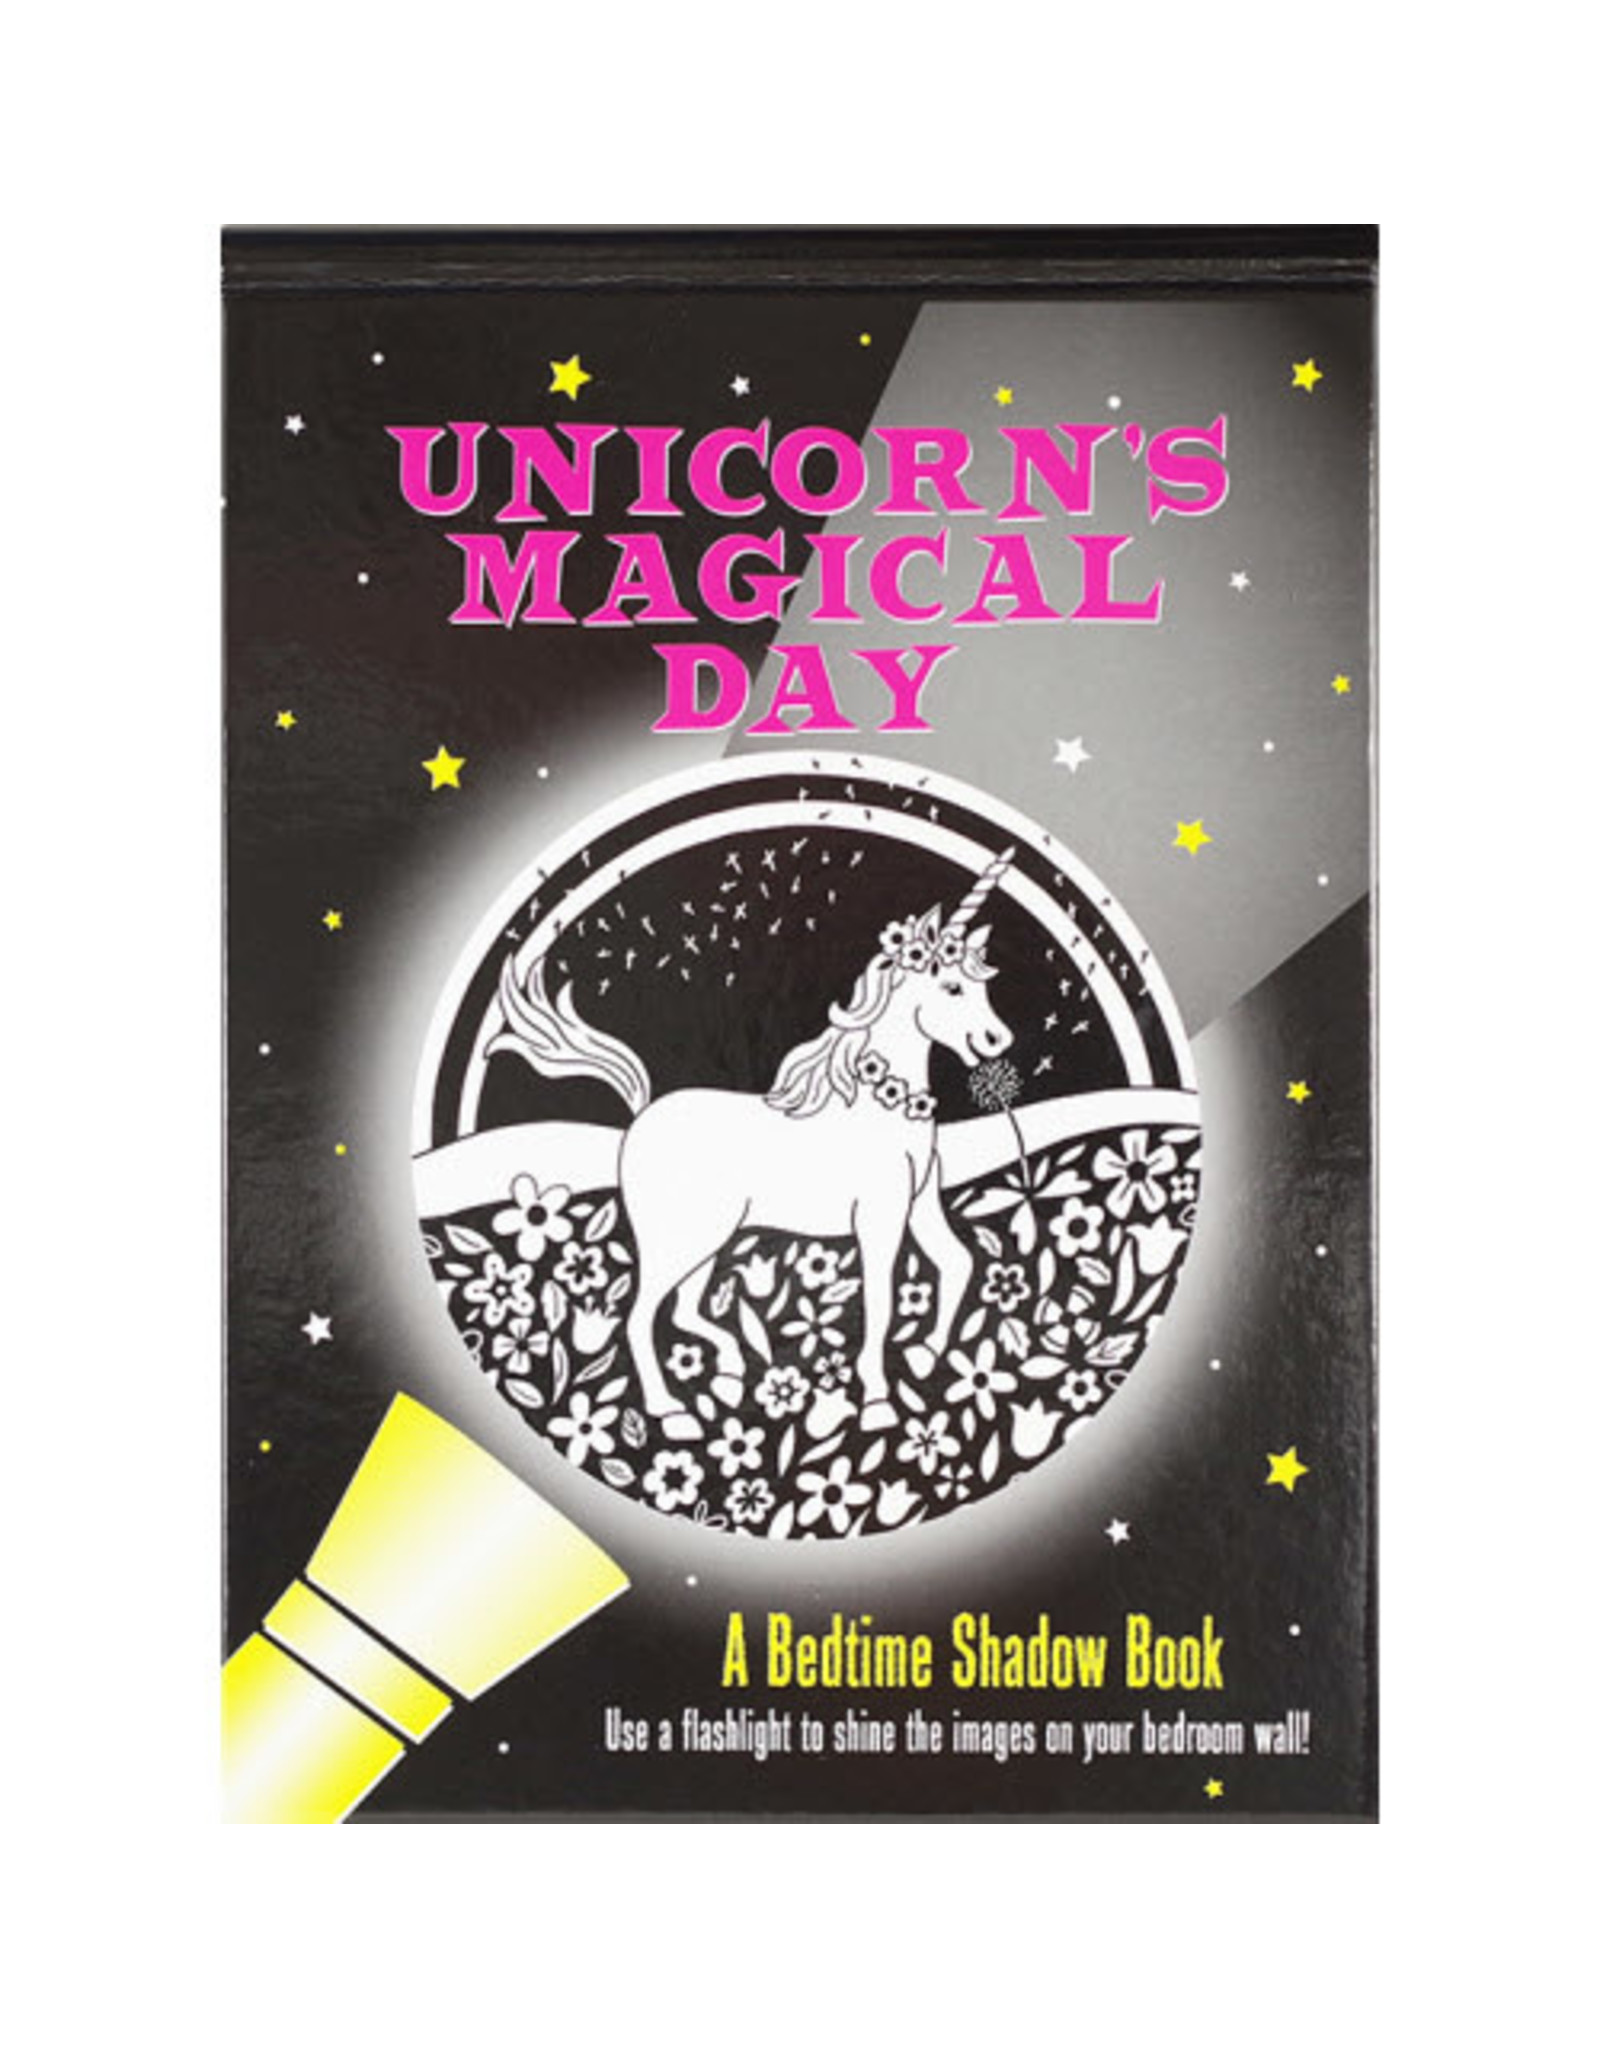 Bedtime Shadow Book: Unicorn's Magical Day